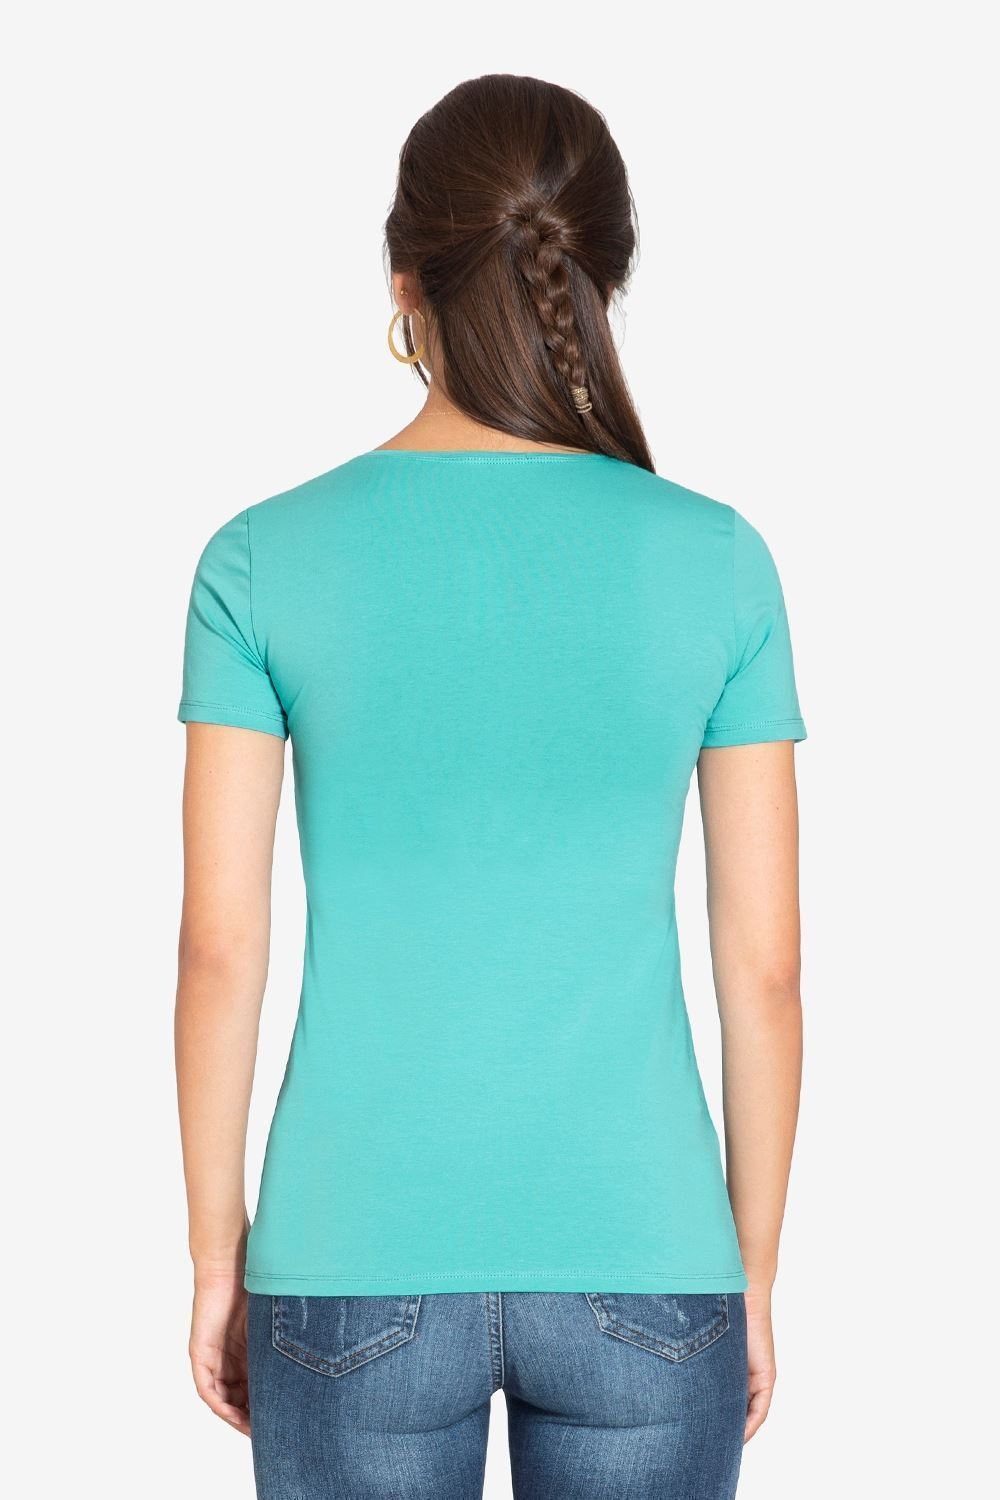 Turquoise Green short sleeved nursing Top  - seen from behind